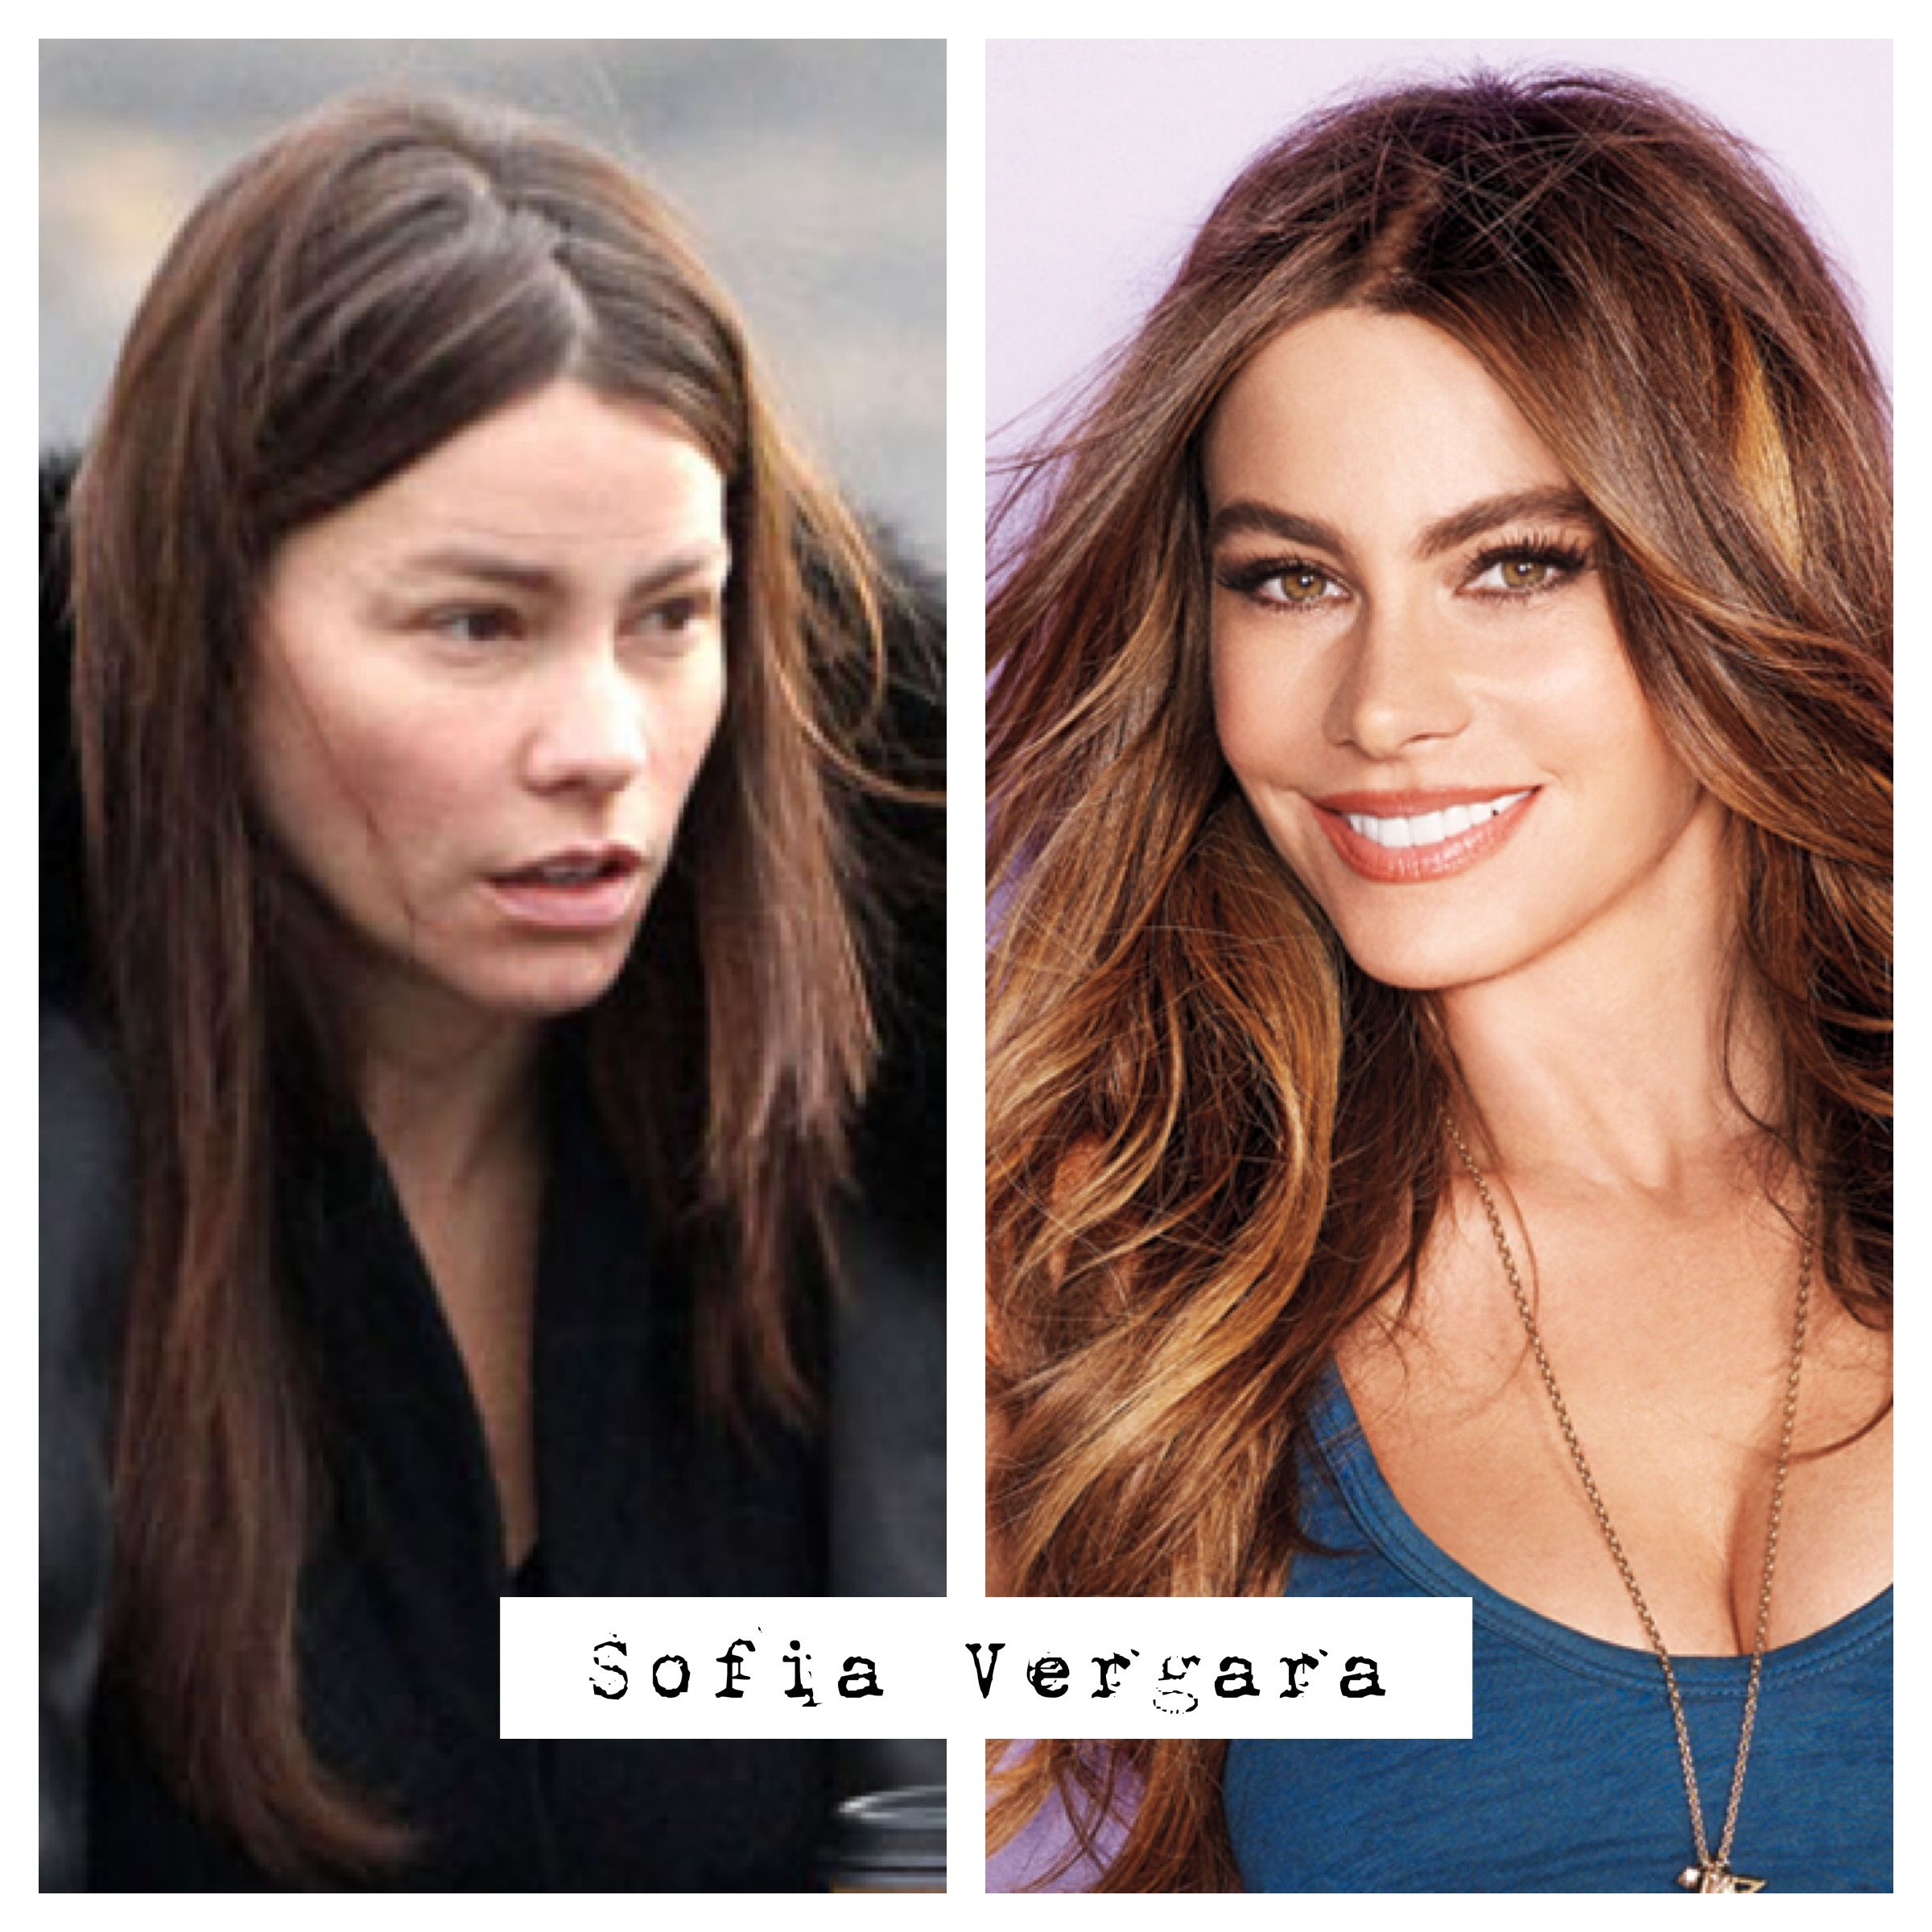 Sofia Vergara no makeup before and after. This woman is